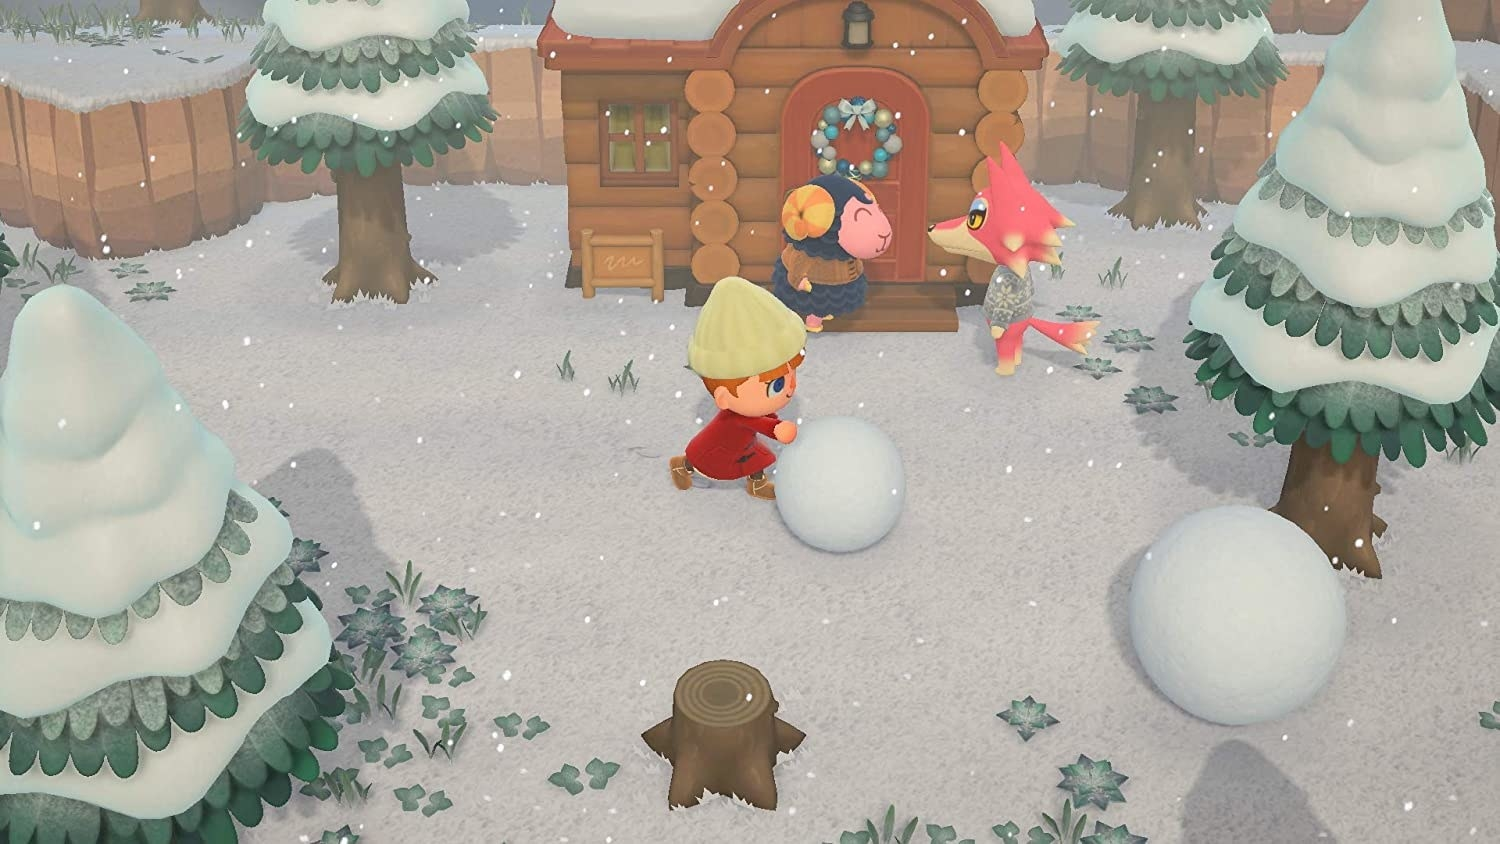 animal crossing character rolling a snow ball while two animal villagers talk behind them